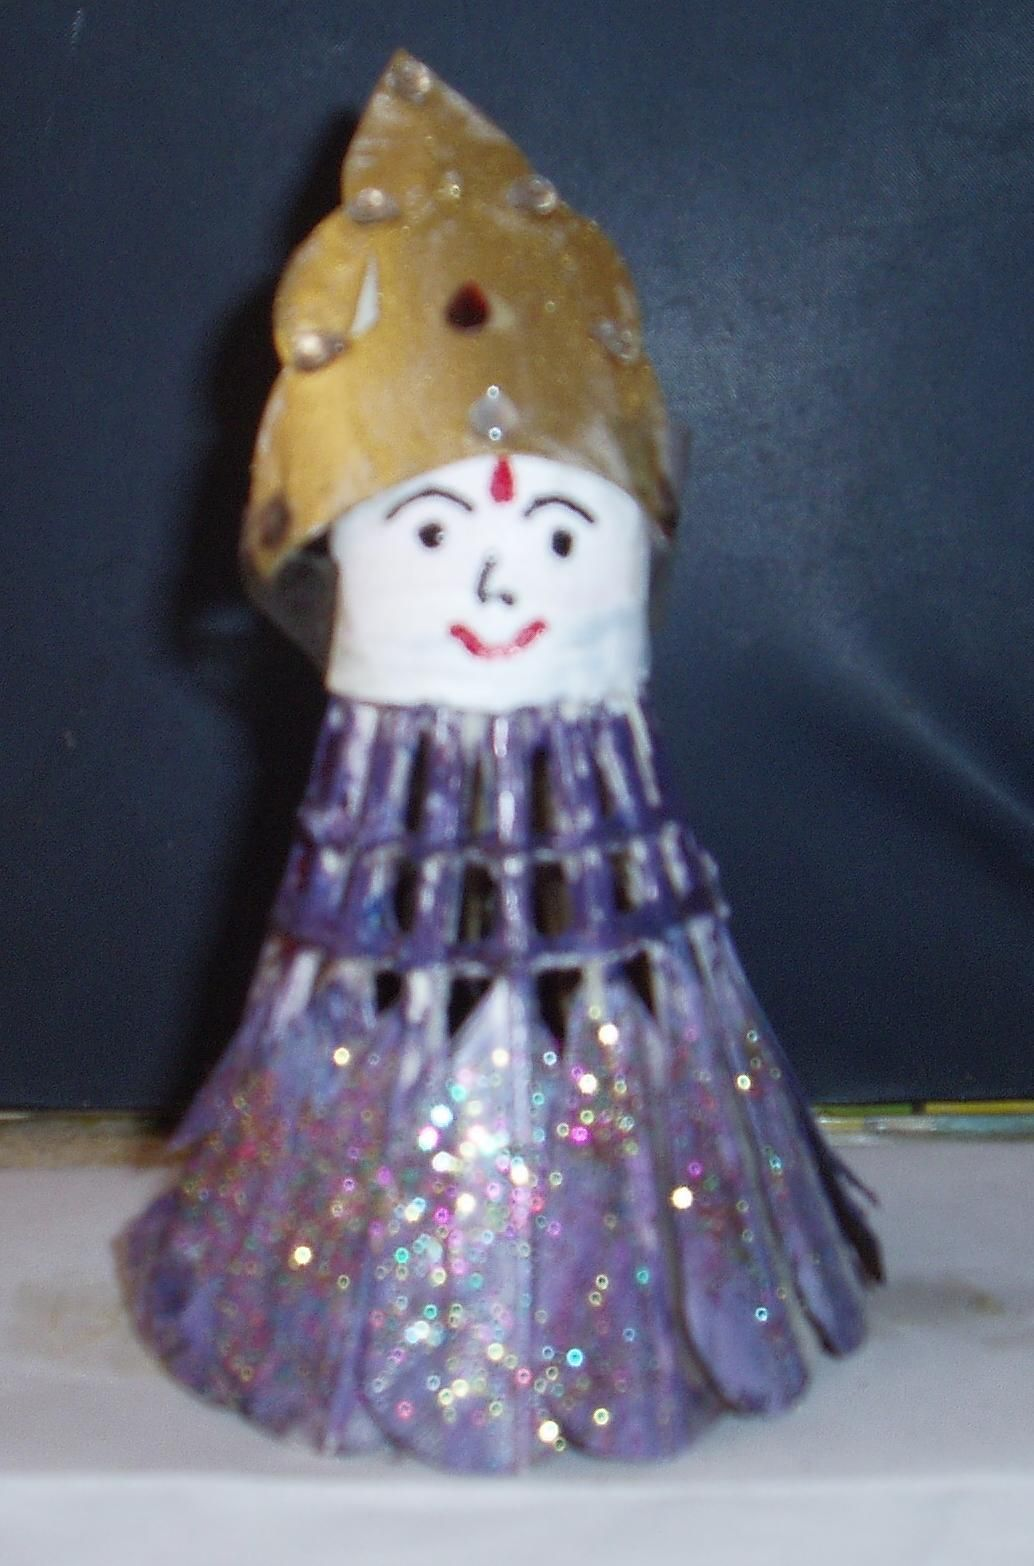 Doll Making From Waste Material Google Search Vidhush Doll